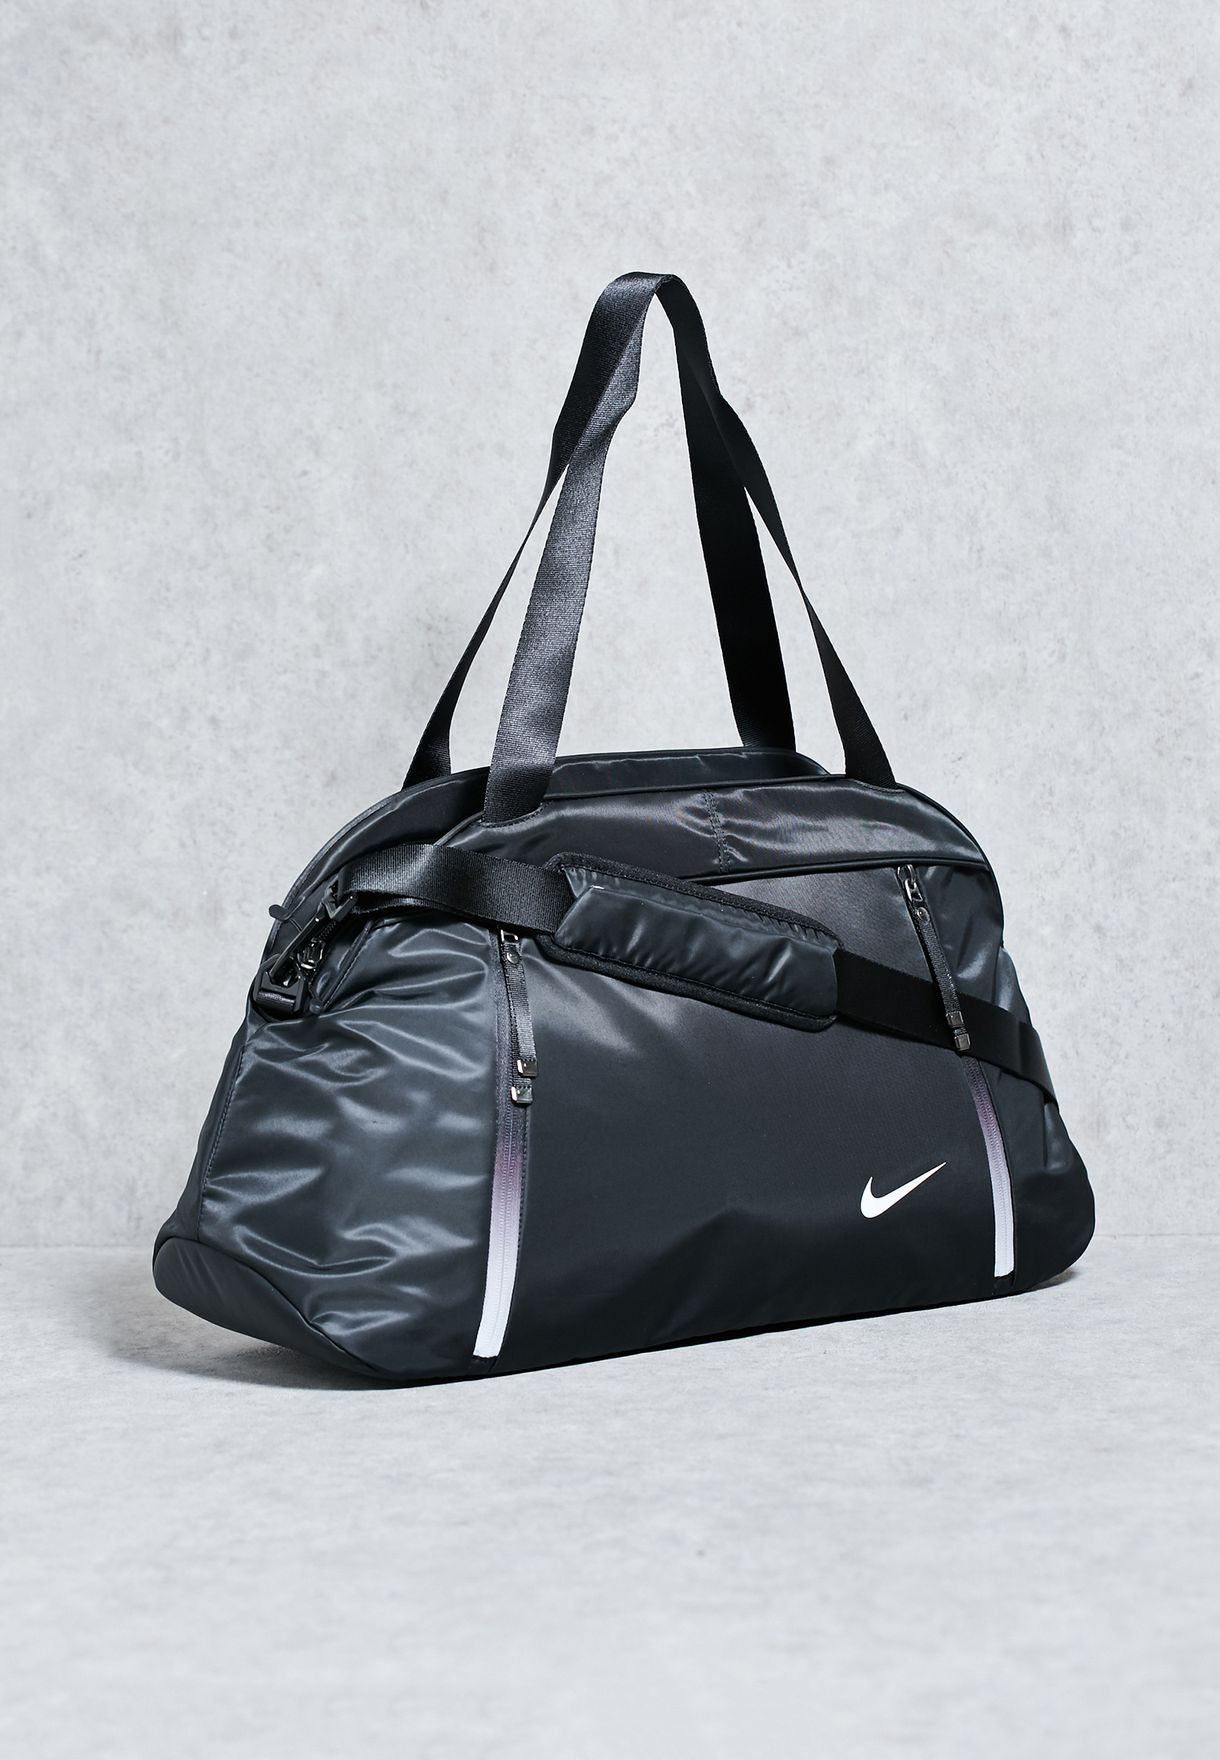 6f36c3f41349 Shop Nike black Auralux Club Duffel BA5208-010 for Women in Qatar -  NI727AC73UWW